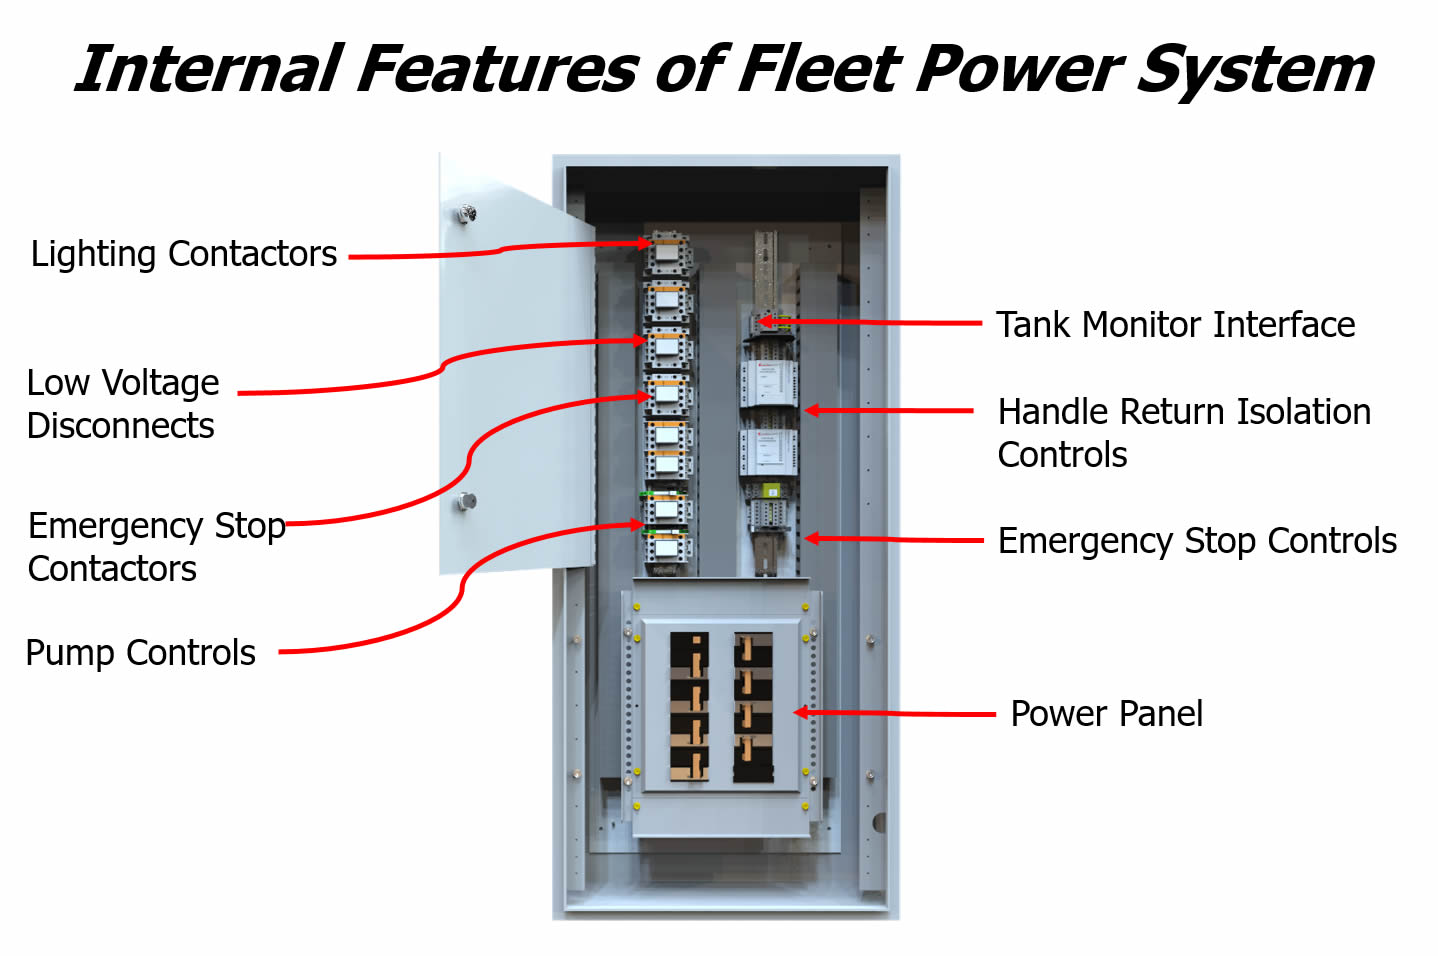 Power Integrity Fleet Power System Internal Features